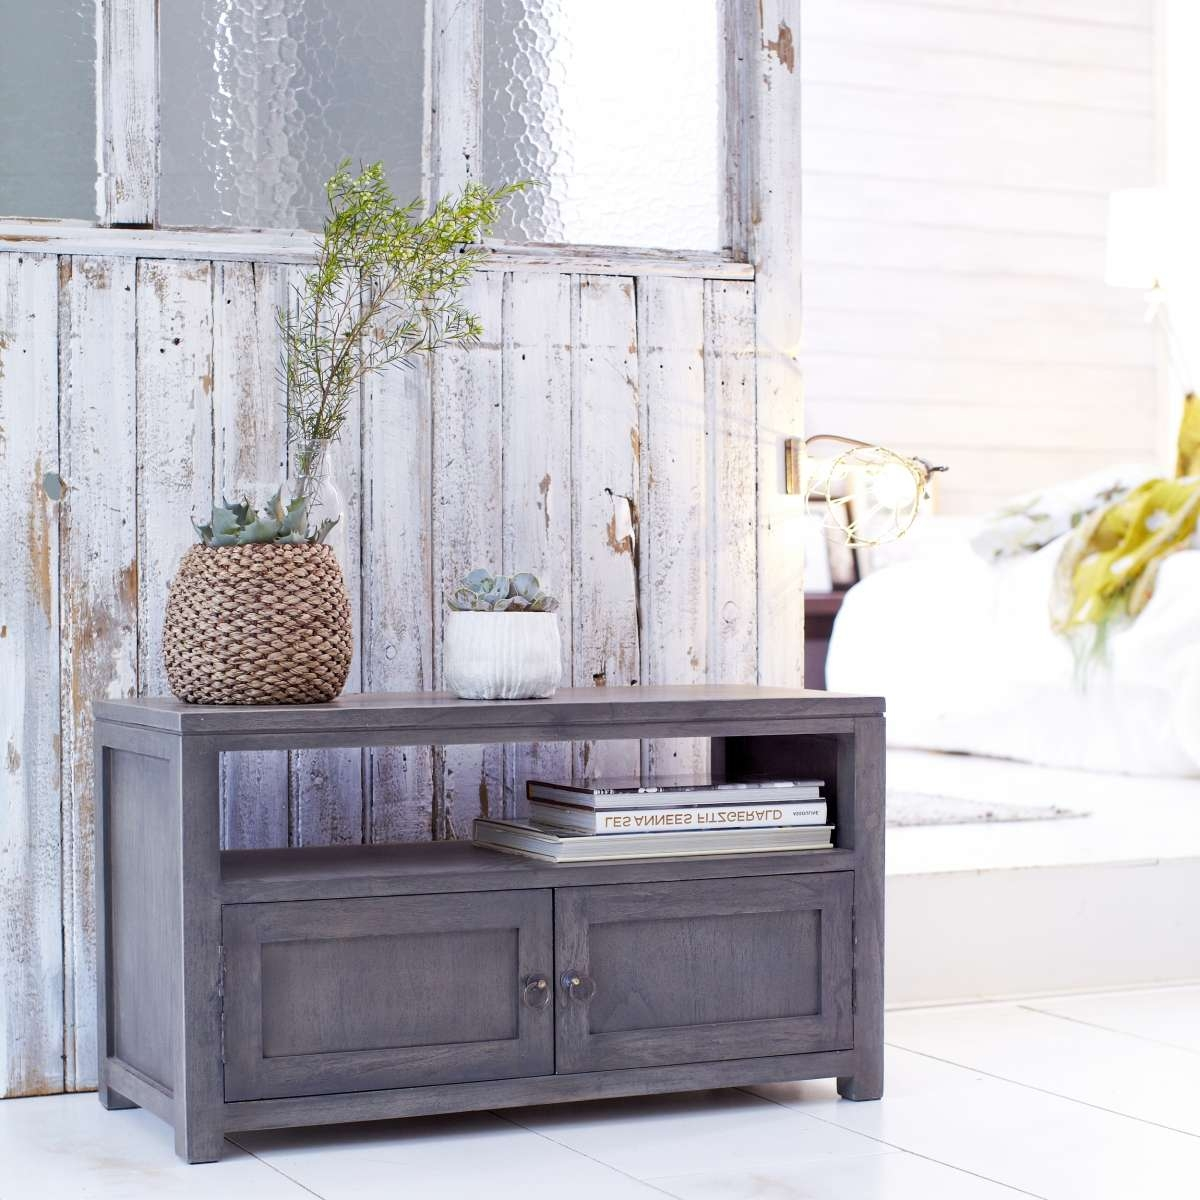 Tikamoon Solid Painted Grey Small Wood Mindi Tv Stand Tv Cabinet Within Grey Wood Tv Stands (View 11 of 15)